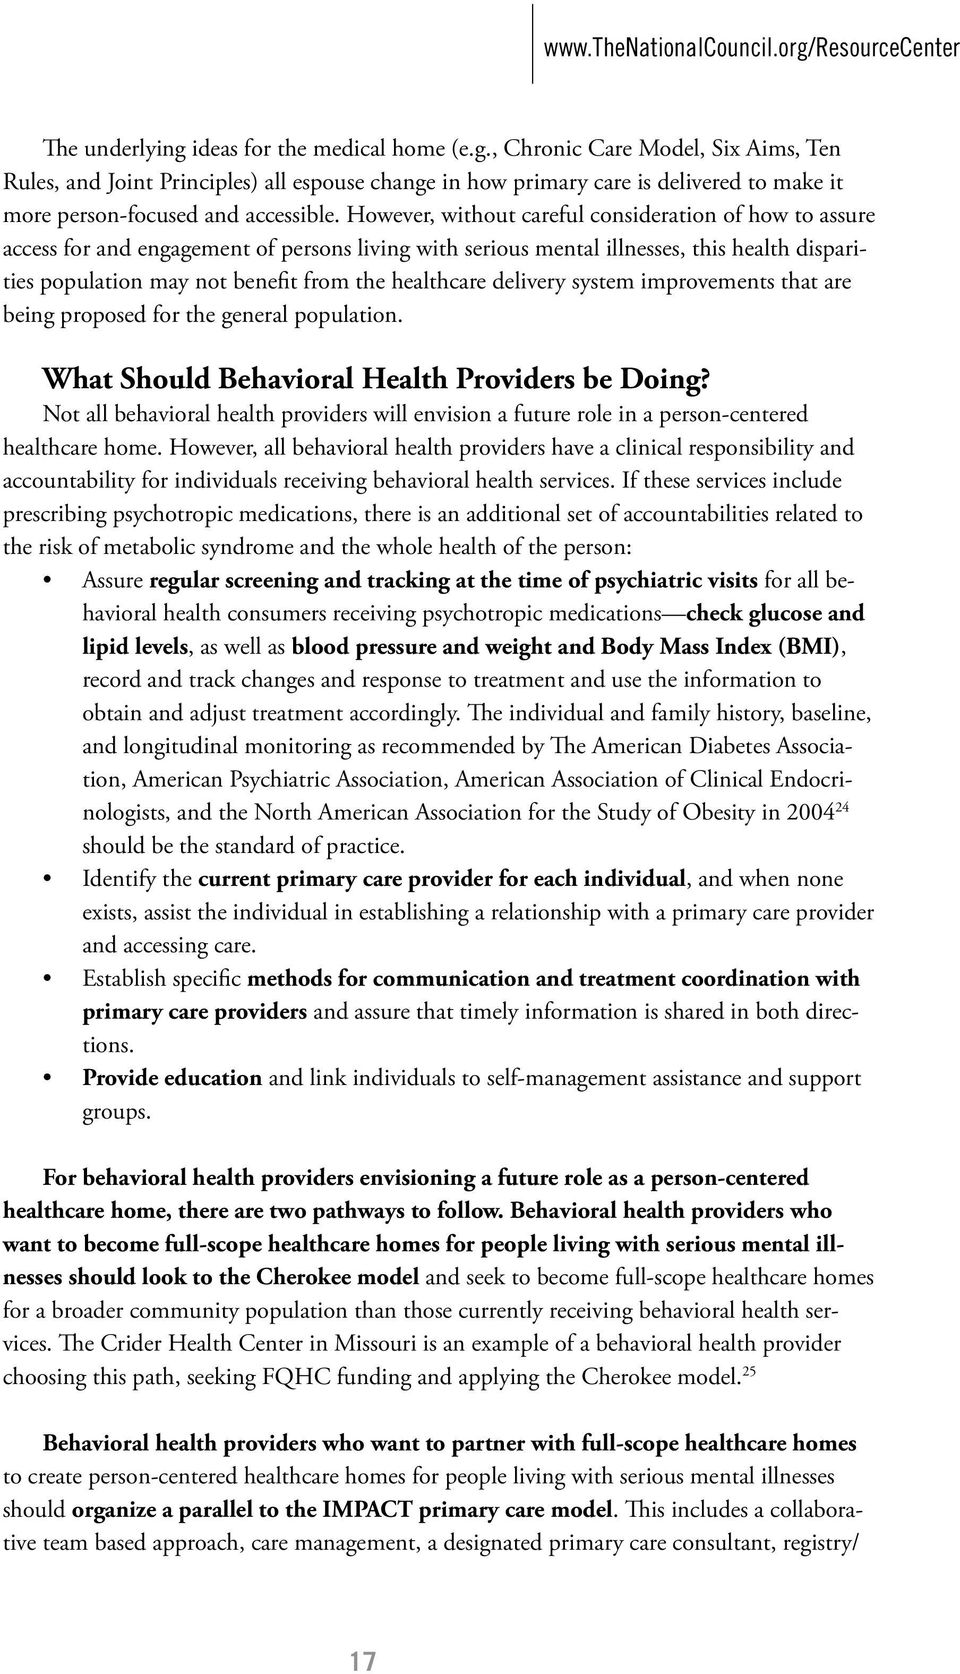 healthcare delivery system improvements that are being proposed for the general population. What Should Behavioral Health Providers be Doing?